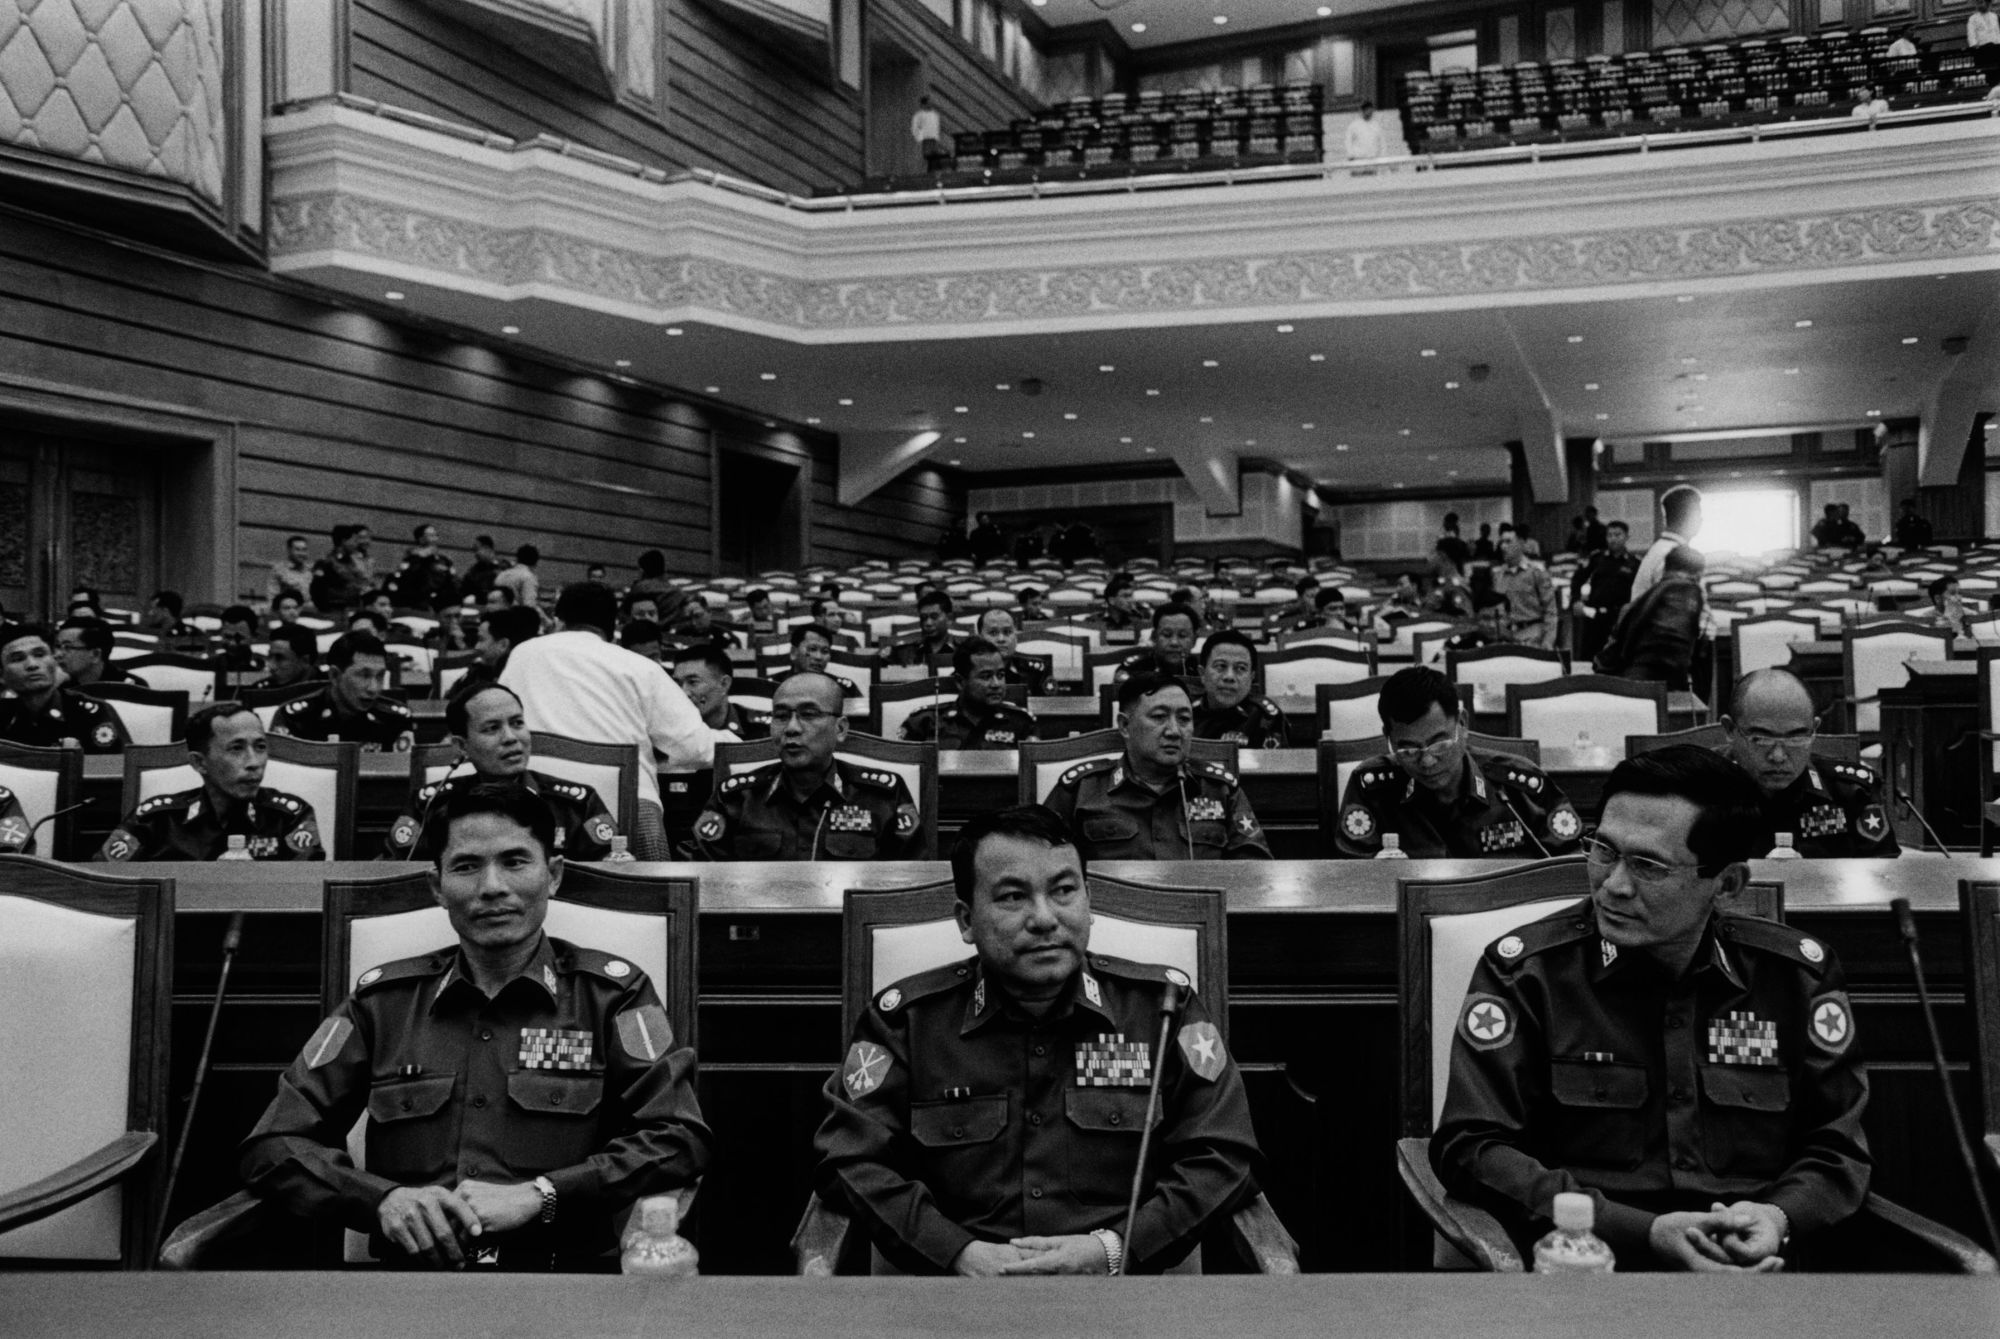 The unelected in Burma's new parliament. Military commanders take their positions in the new parliament building. The Pyithu Hluttaw, or lower house of Burma's parliament, is dominated by former soldiers, their positions guaranteed under a constitution which was ratified after a fraudulent referendum in 2008.